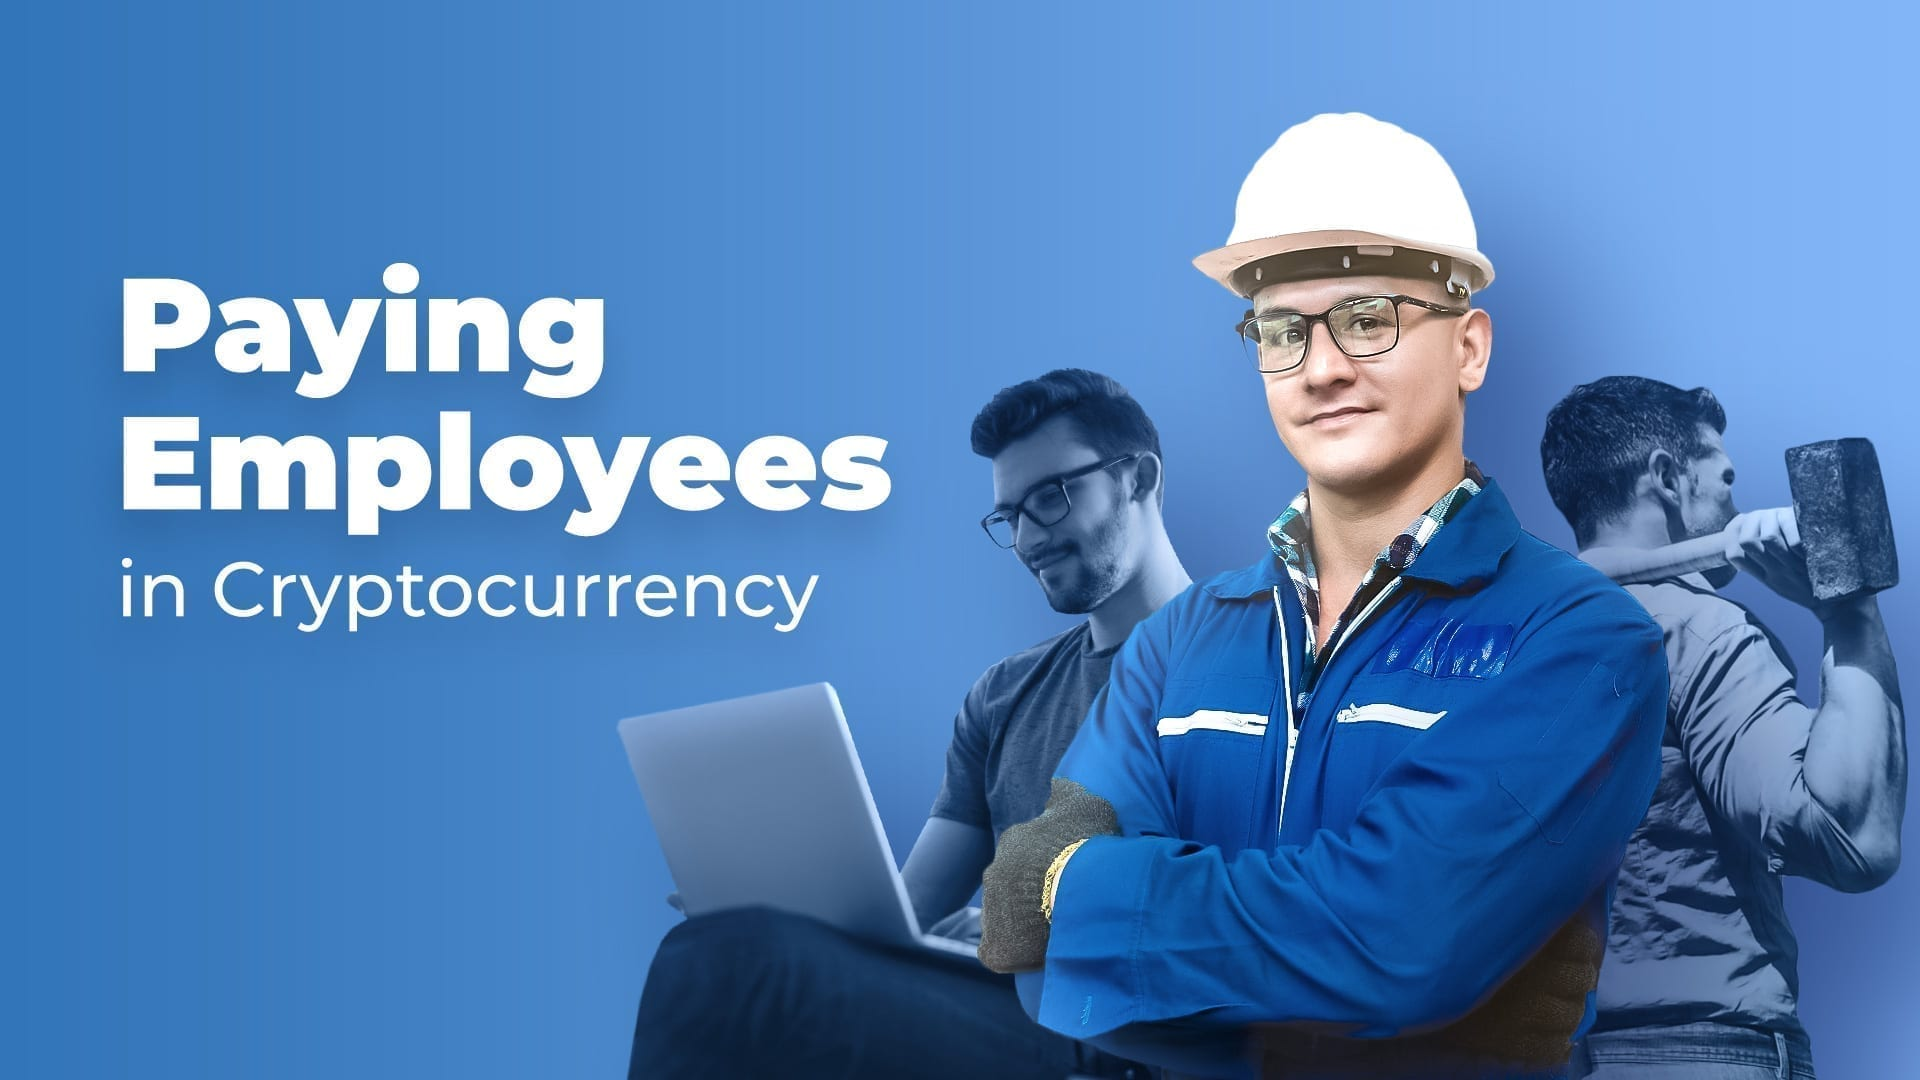 Paying Employees in Cryptocurrencies